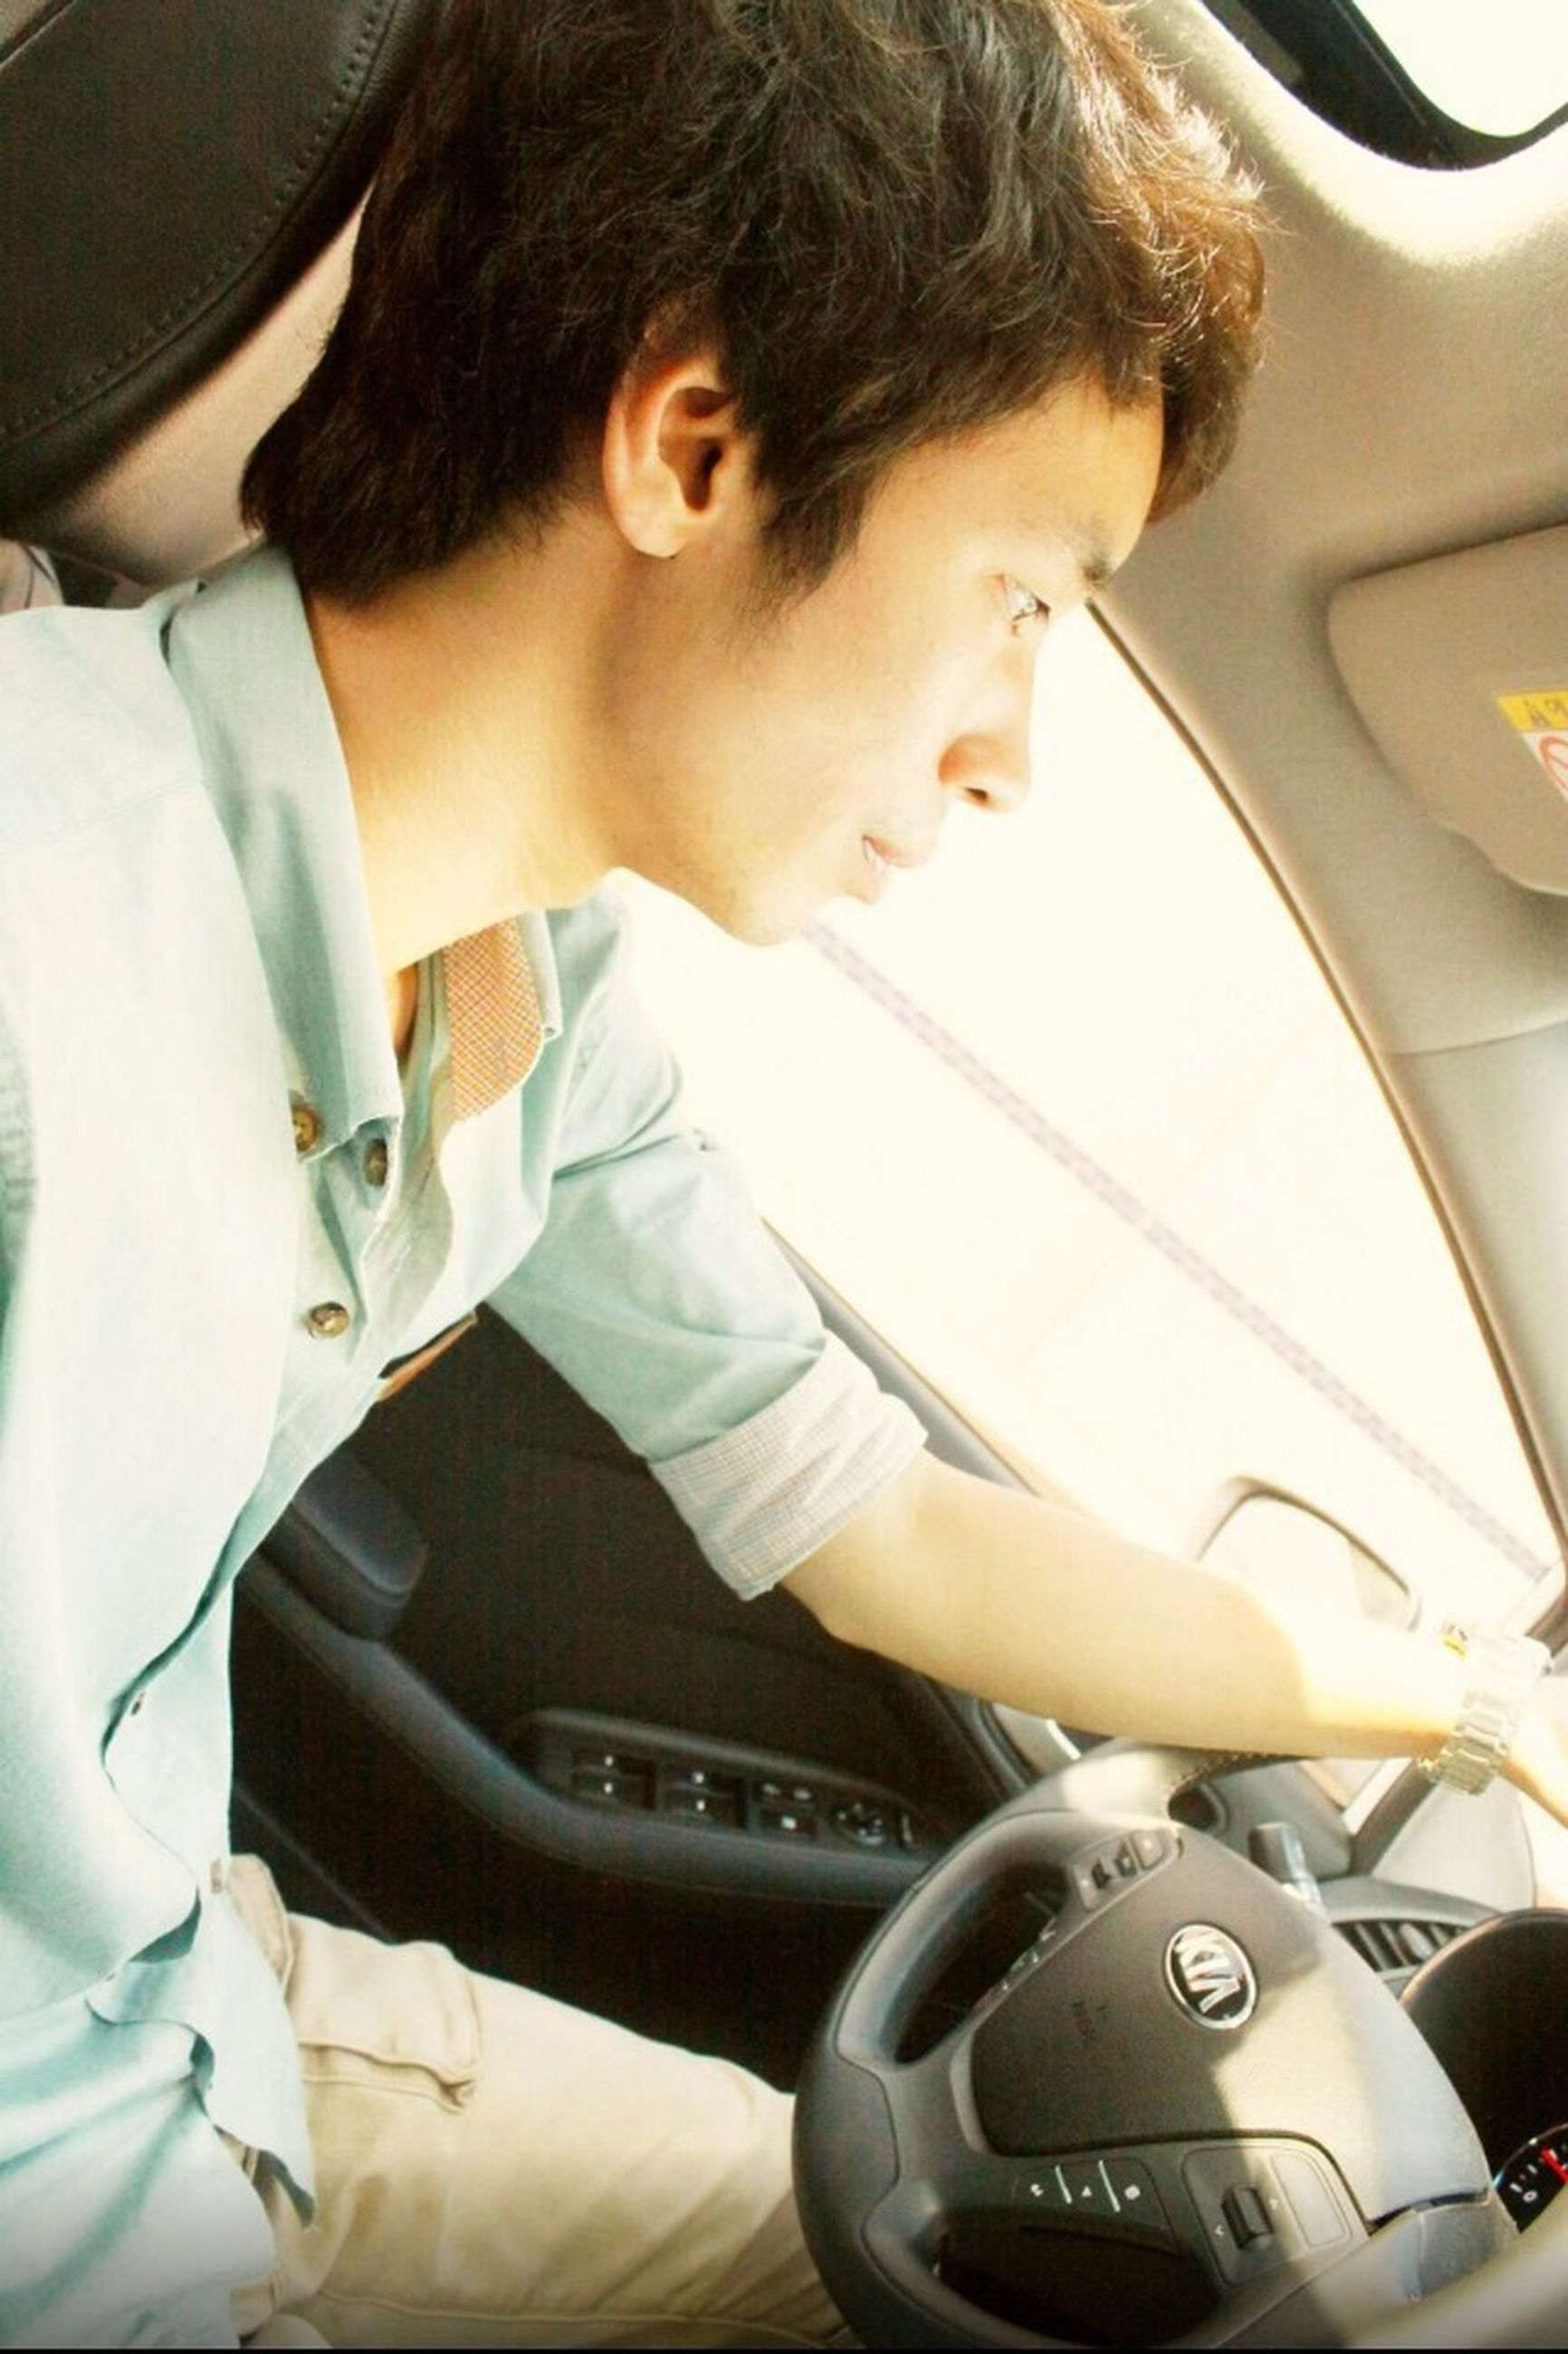 indoors, lifestyles, young adult, vehicle interior, person, sitting, transportation, leisure activity, mode of transport, wireless technology, technology, casual clothing, young men, car, connection, car interior, land vehicle, vehicle seat